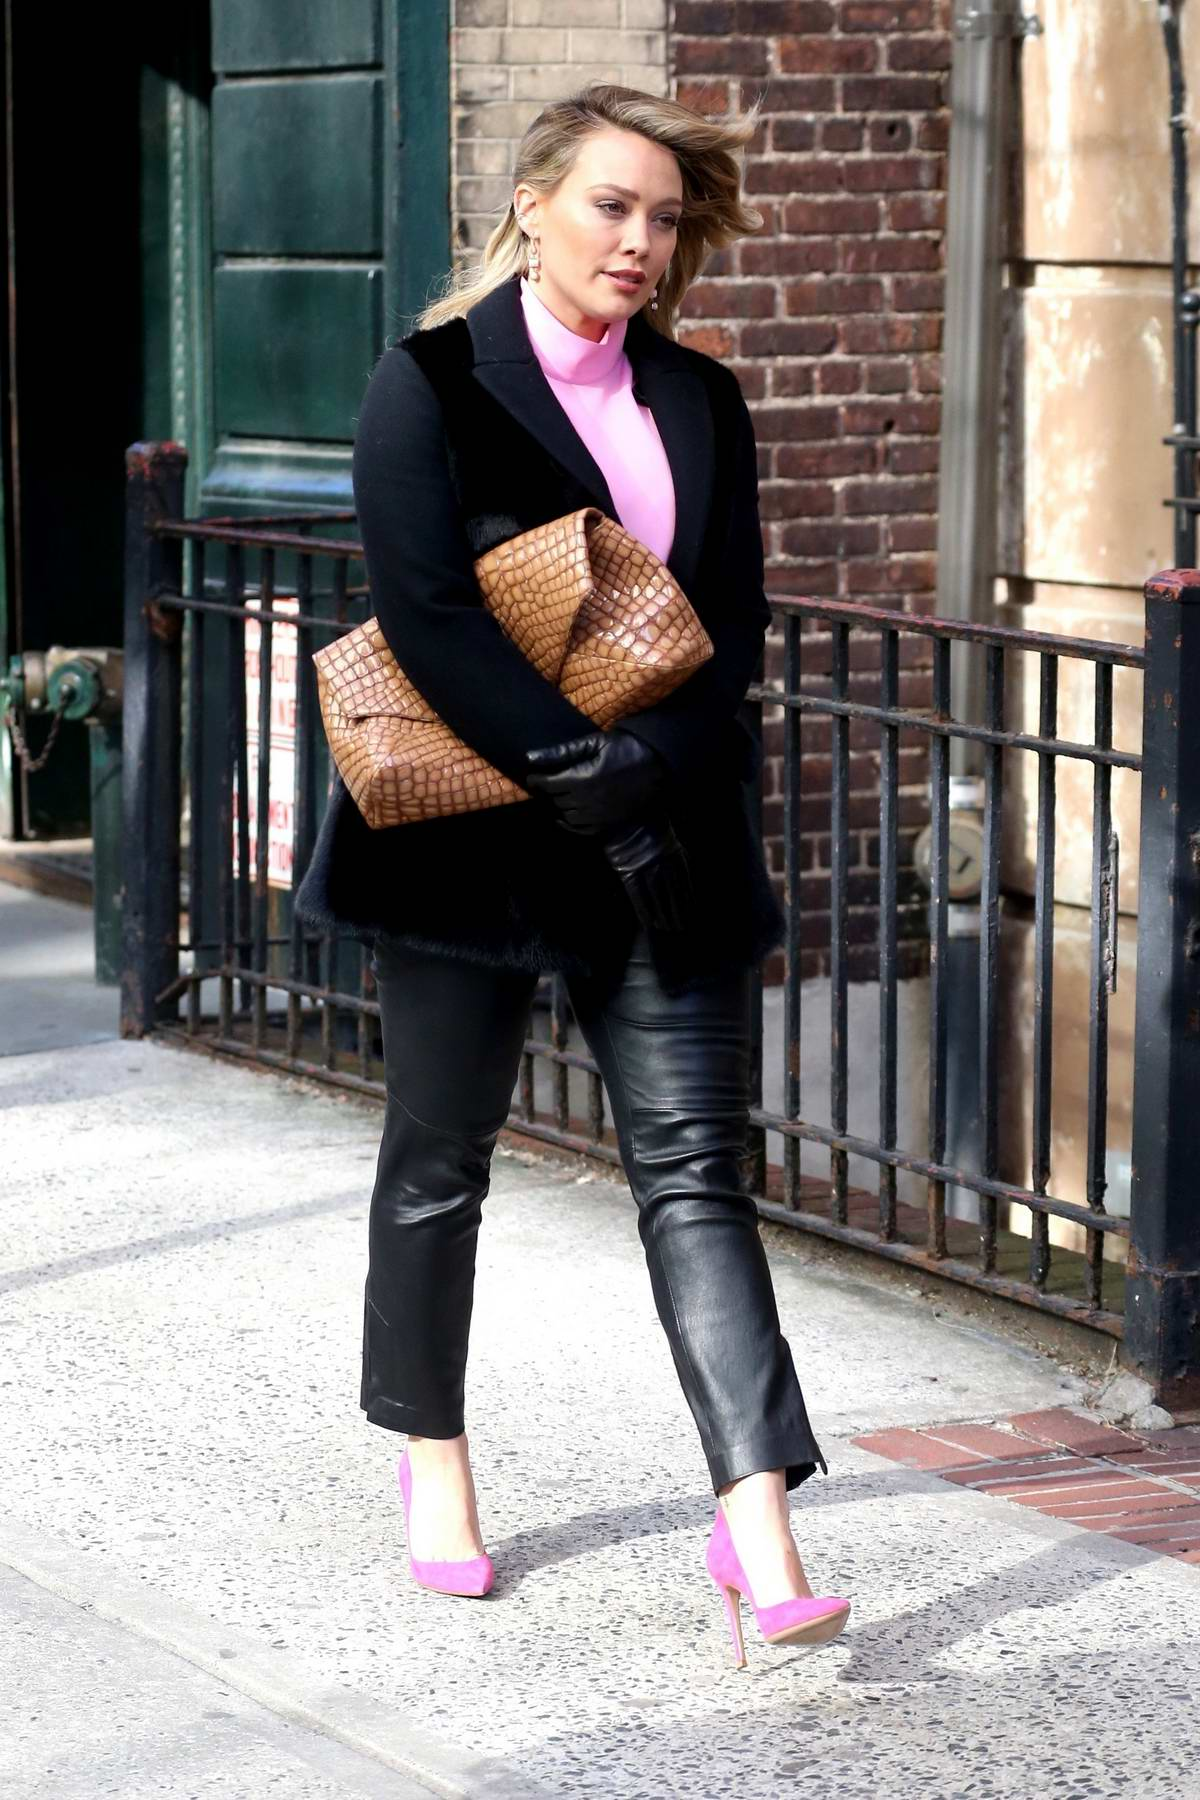 Hilary Duff rocks black and pink while on the set of 'Younger' in New York City